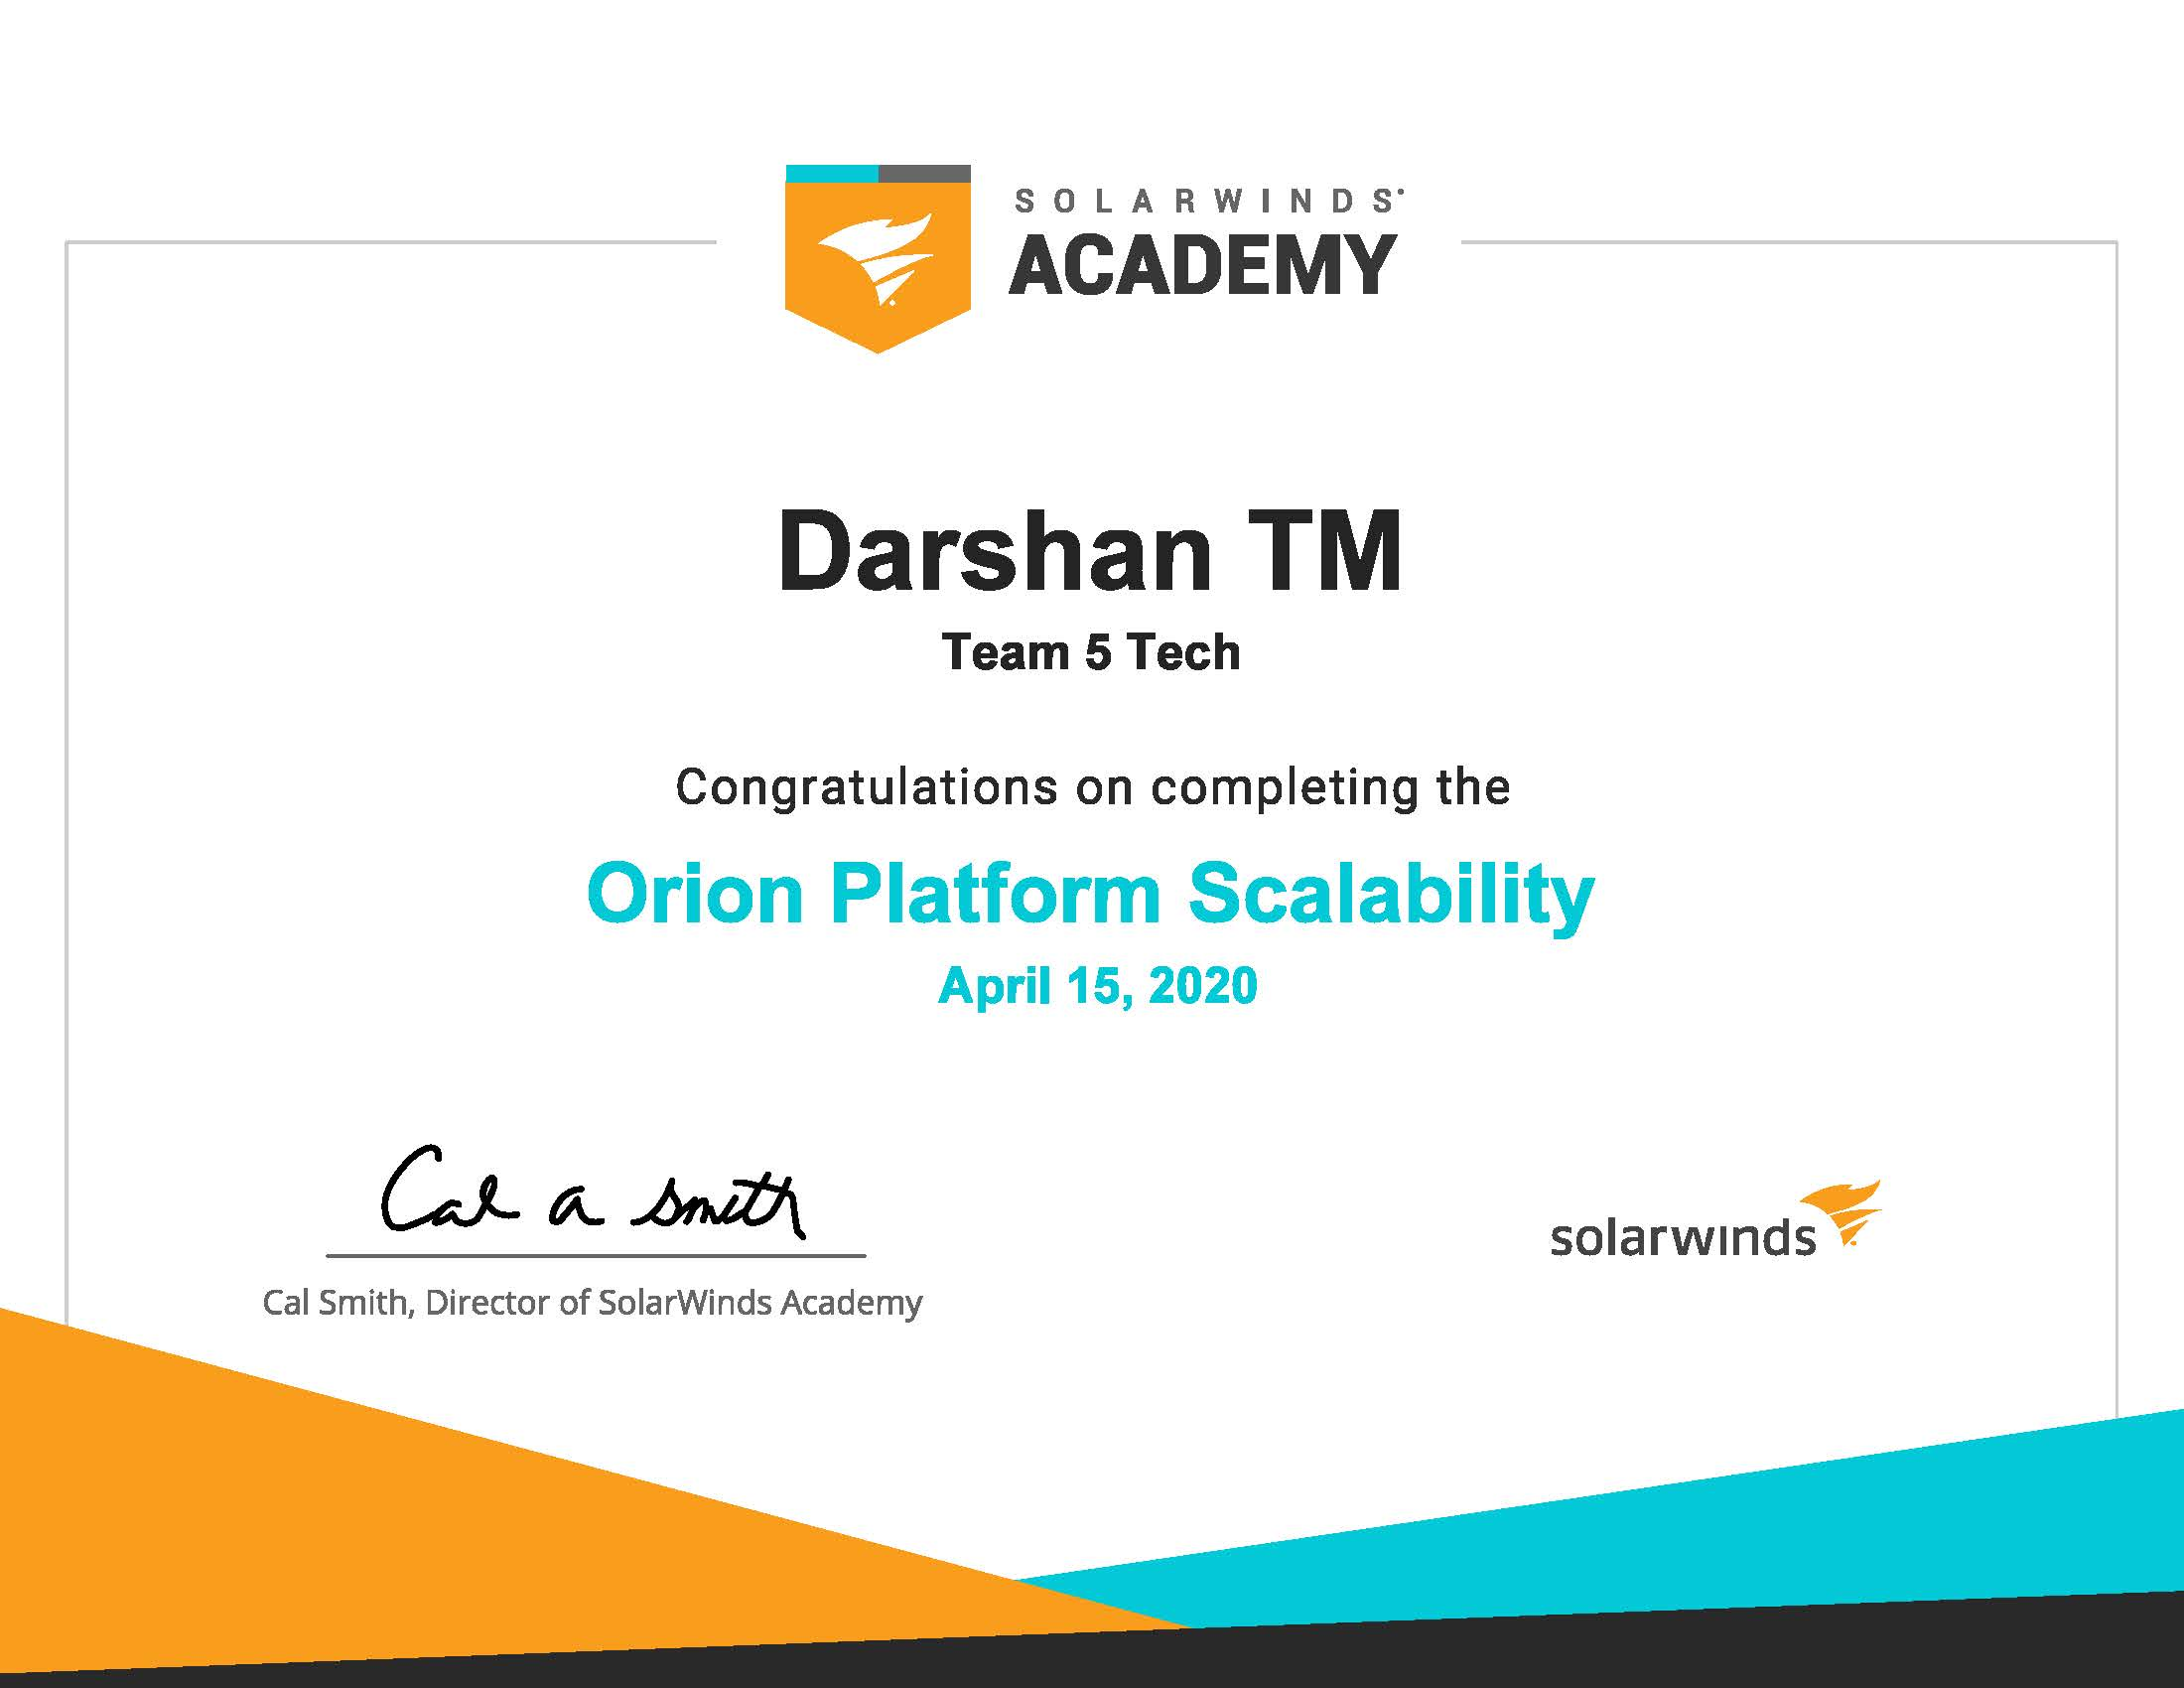 Solarwinds Darshan TM